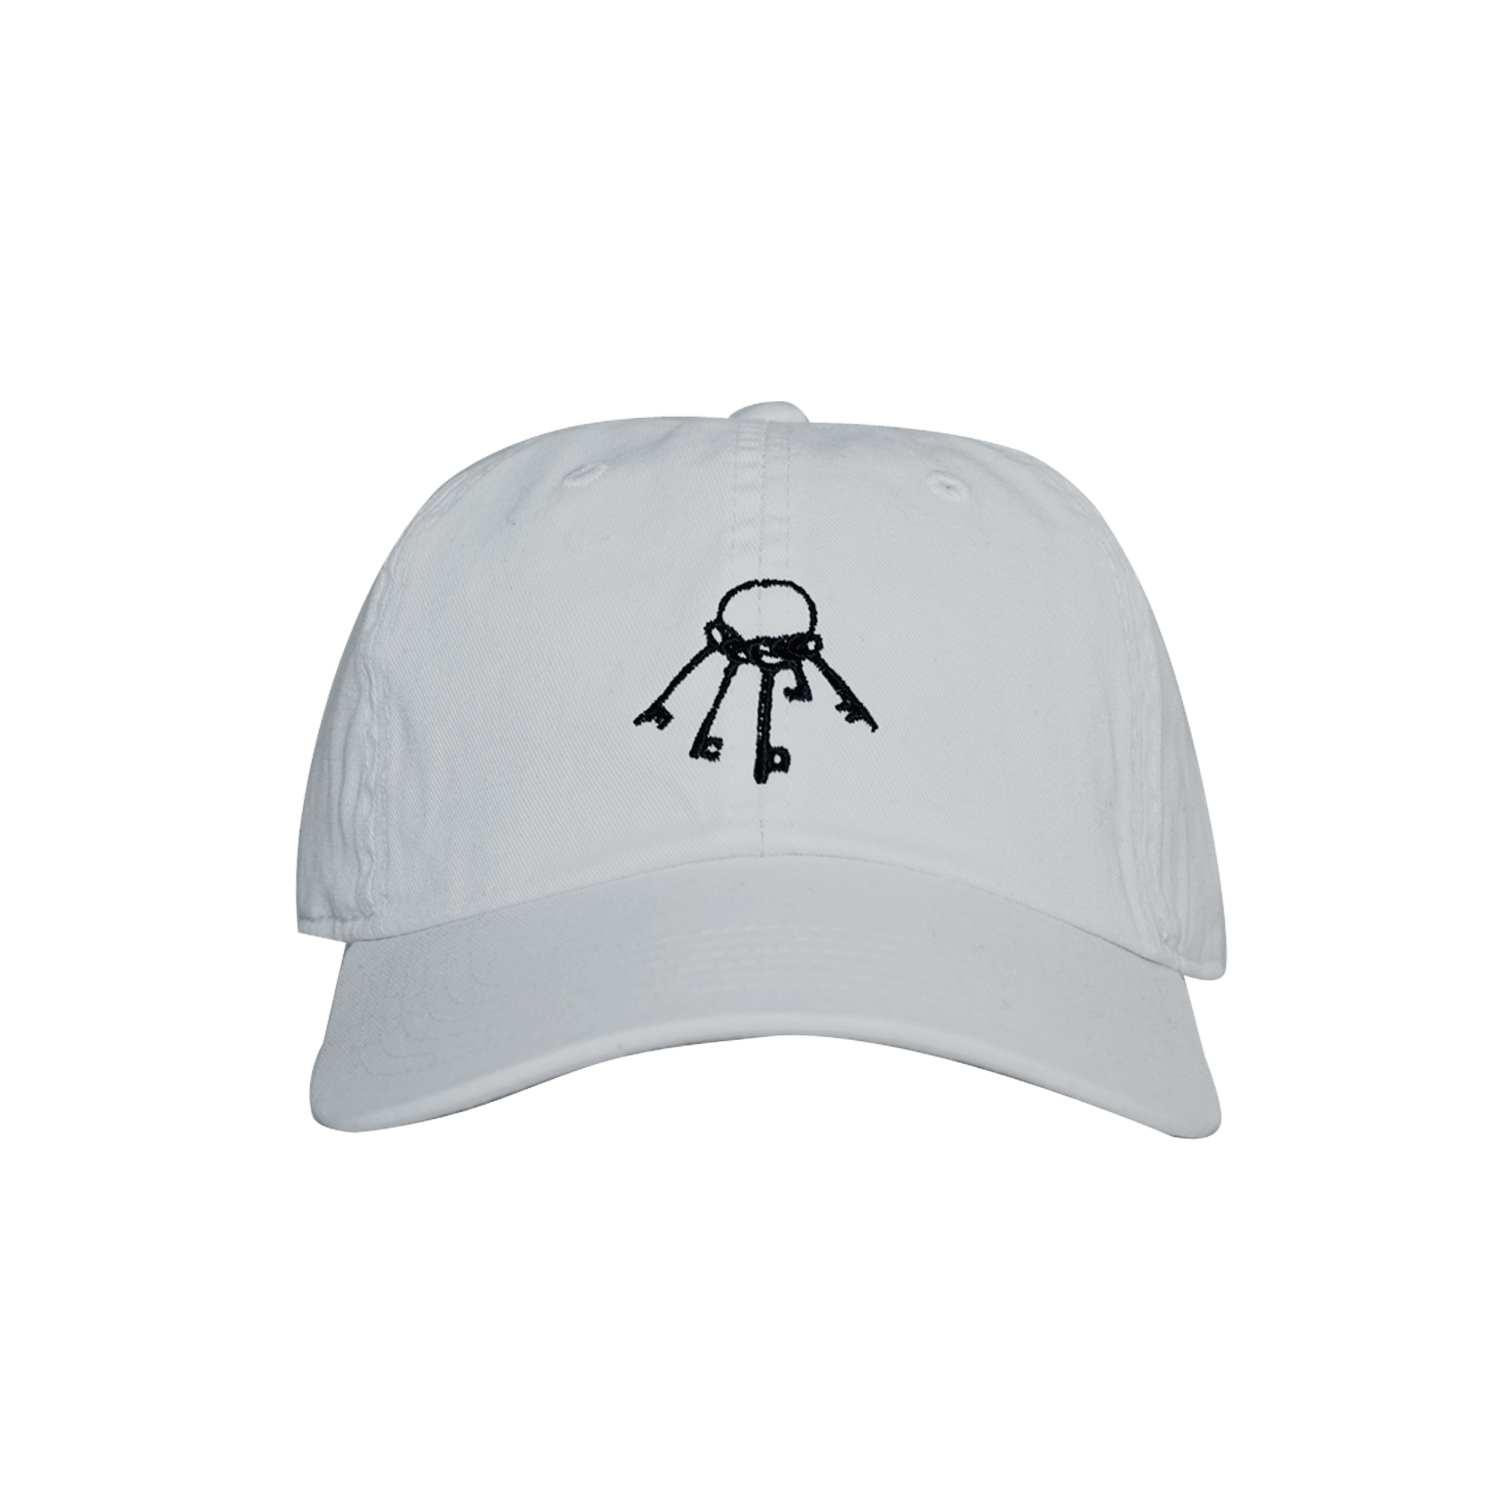 WWWTYO x RepMCD 5th ANNIVERSARY / KEY TO MCD BALL CAP (WHITE)